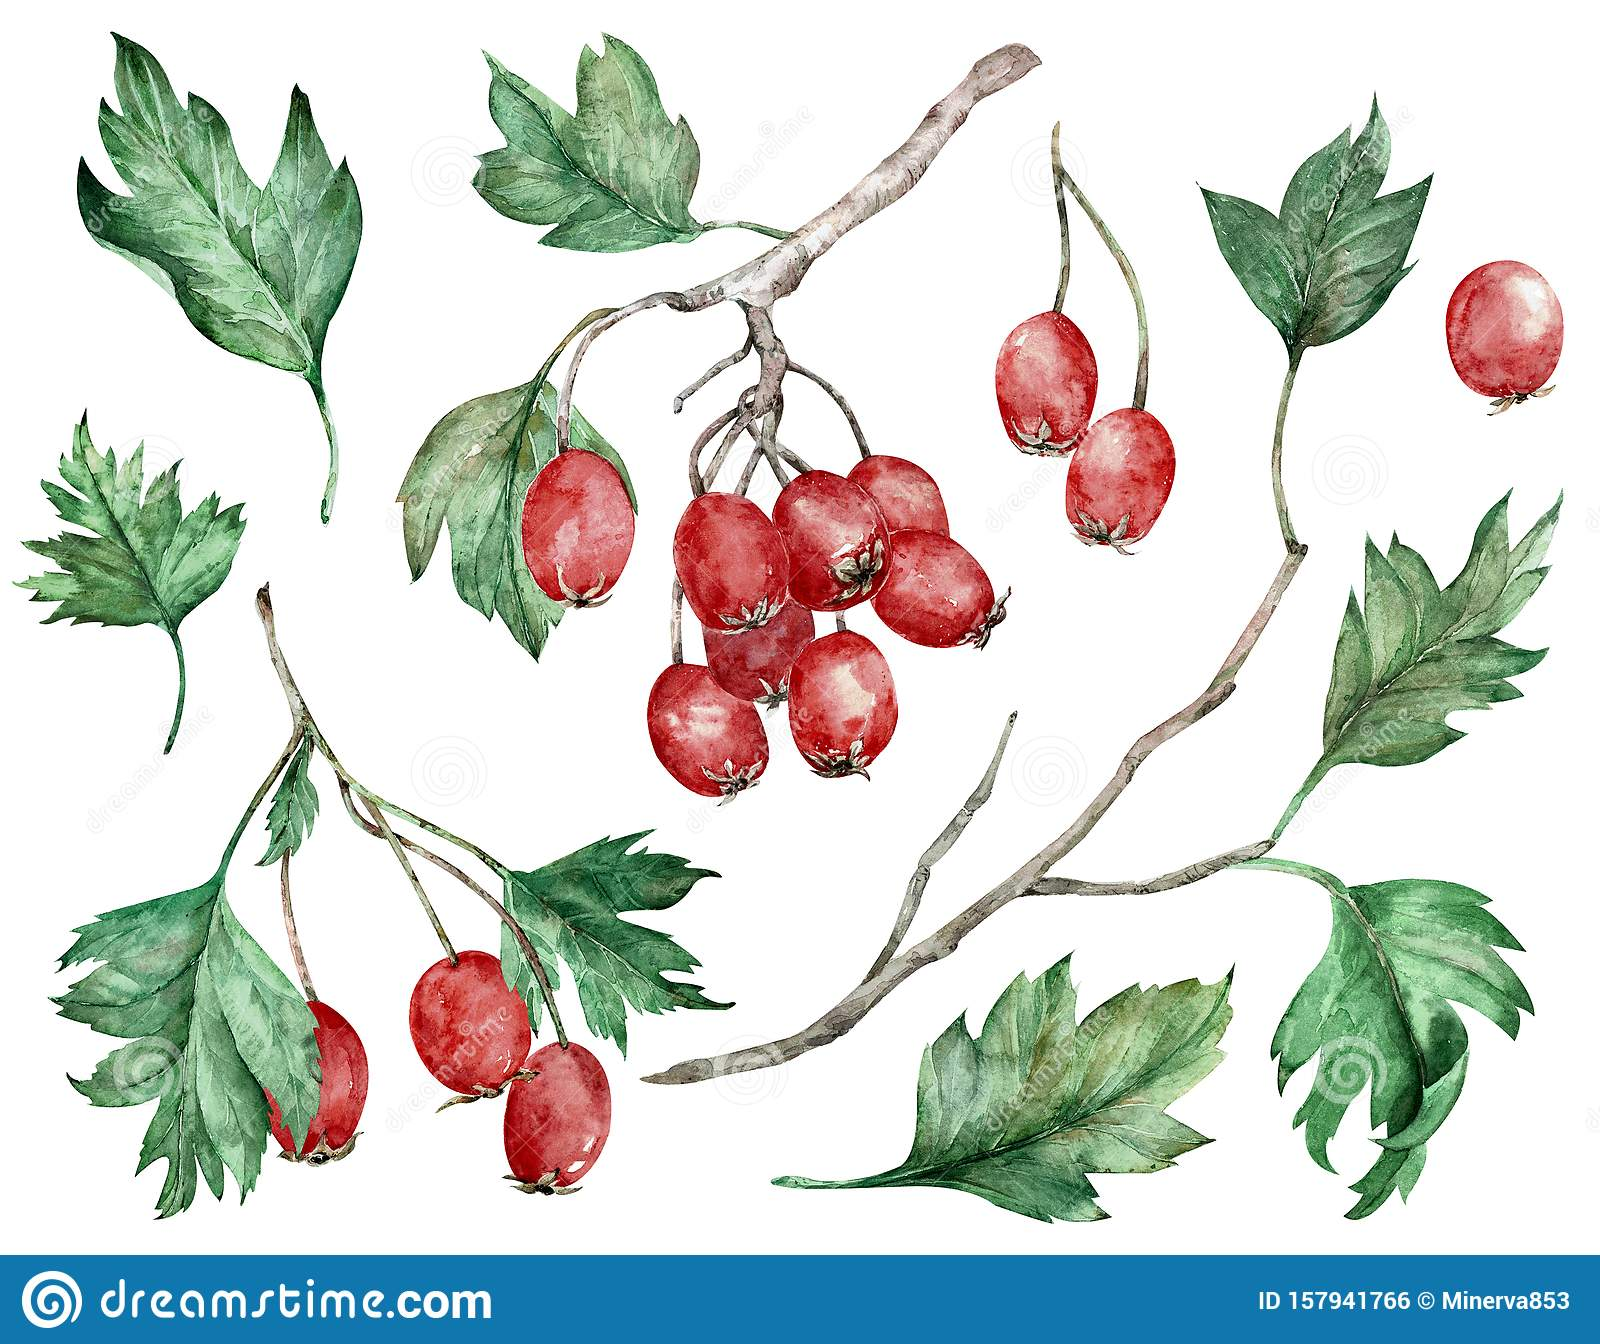 Watercolor illustration of hawthorn red berries and green leaves on branches. Botanical art. Hand-drawn clipart